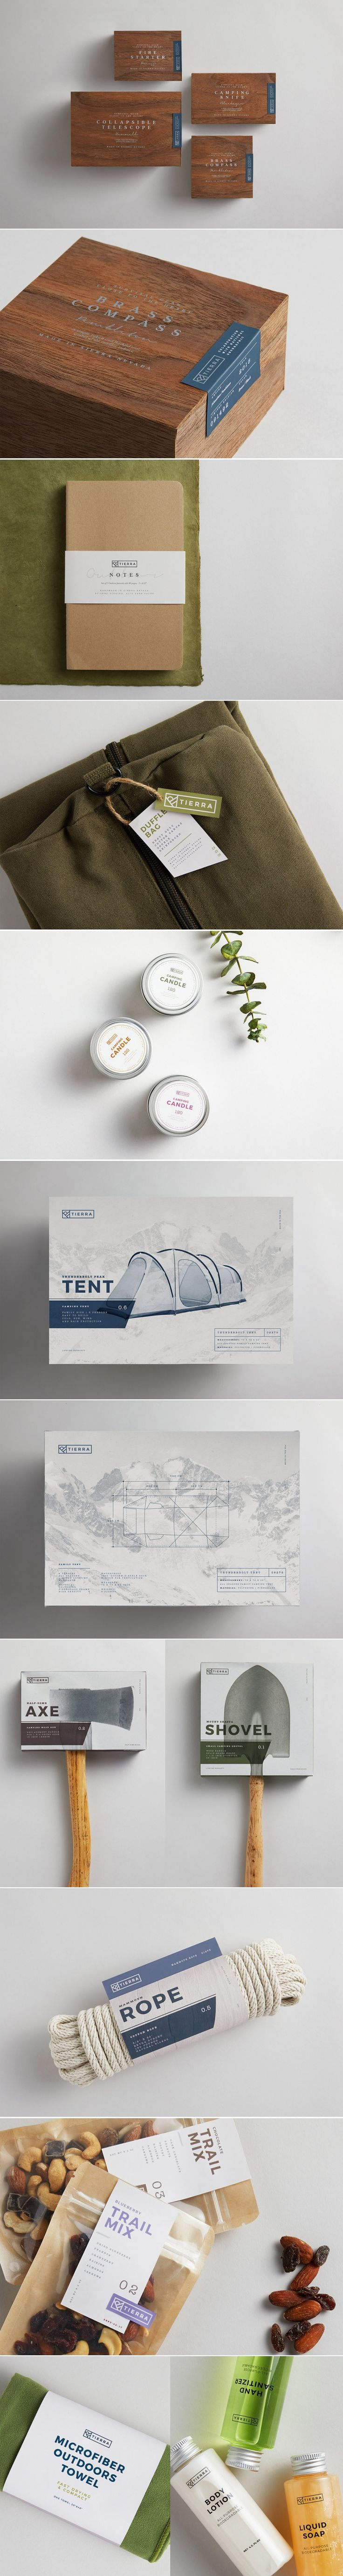 Tierra is a Conceptual Brand Inspired By The Great Outdoors — The Dieline | Packaging & Branding Design & Innovation News